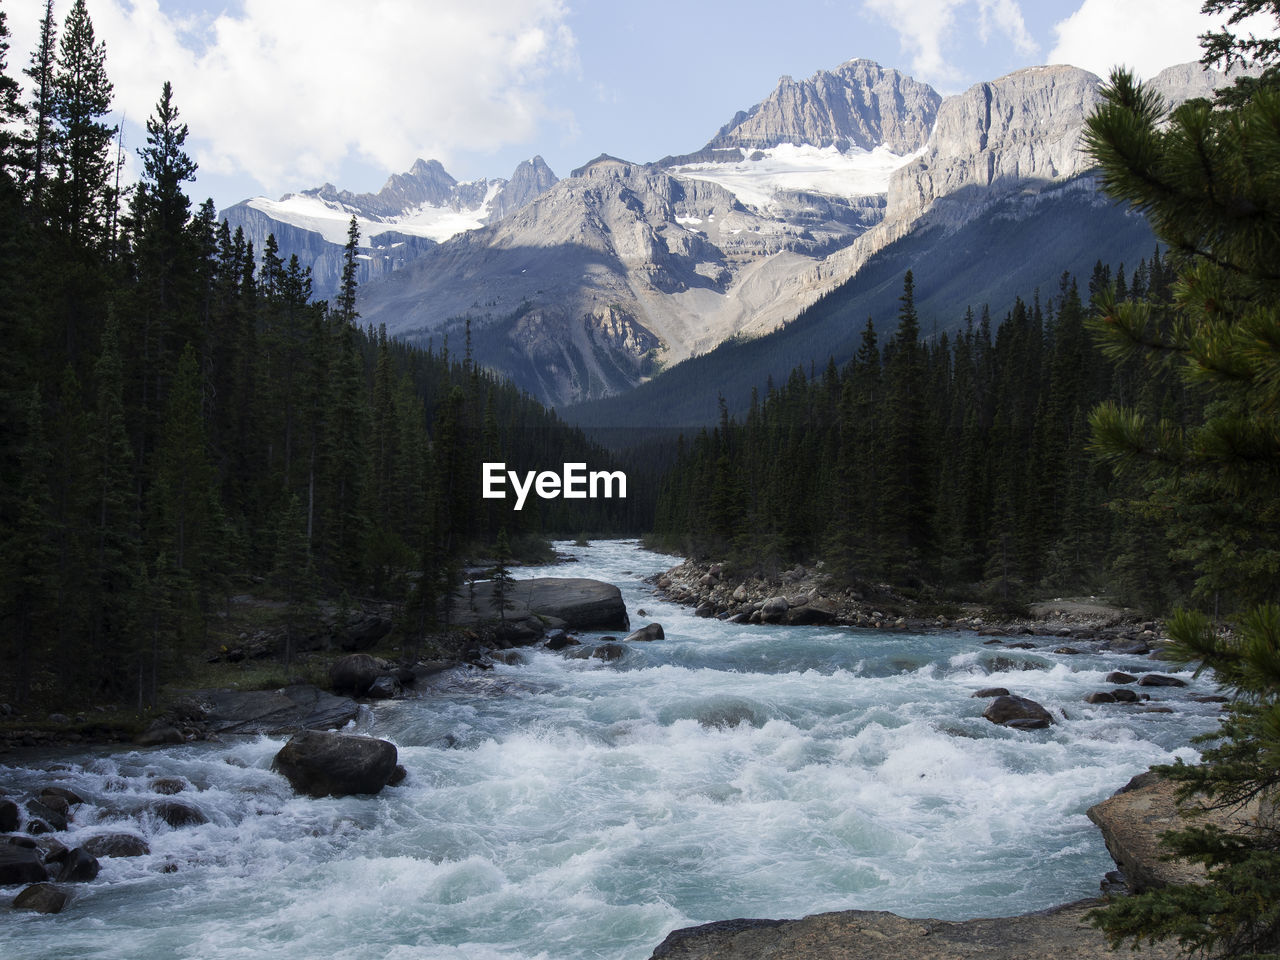 Scenic View Of River Flowing Through Rocks And Mountains